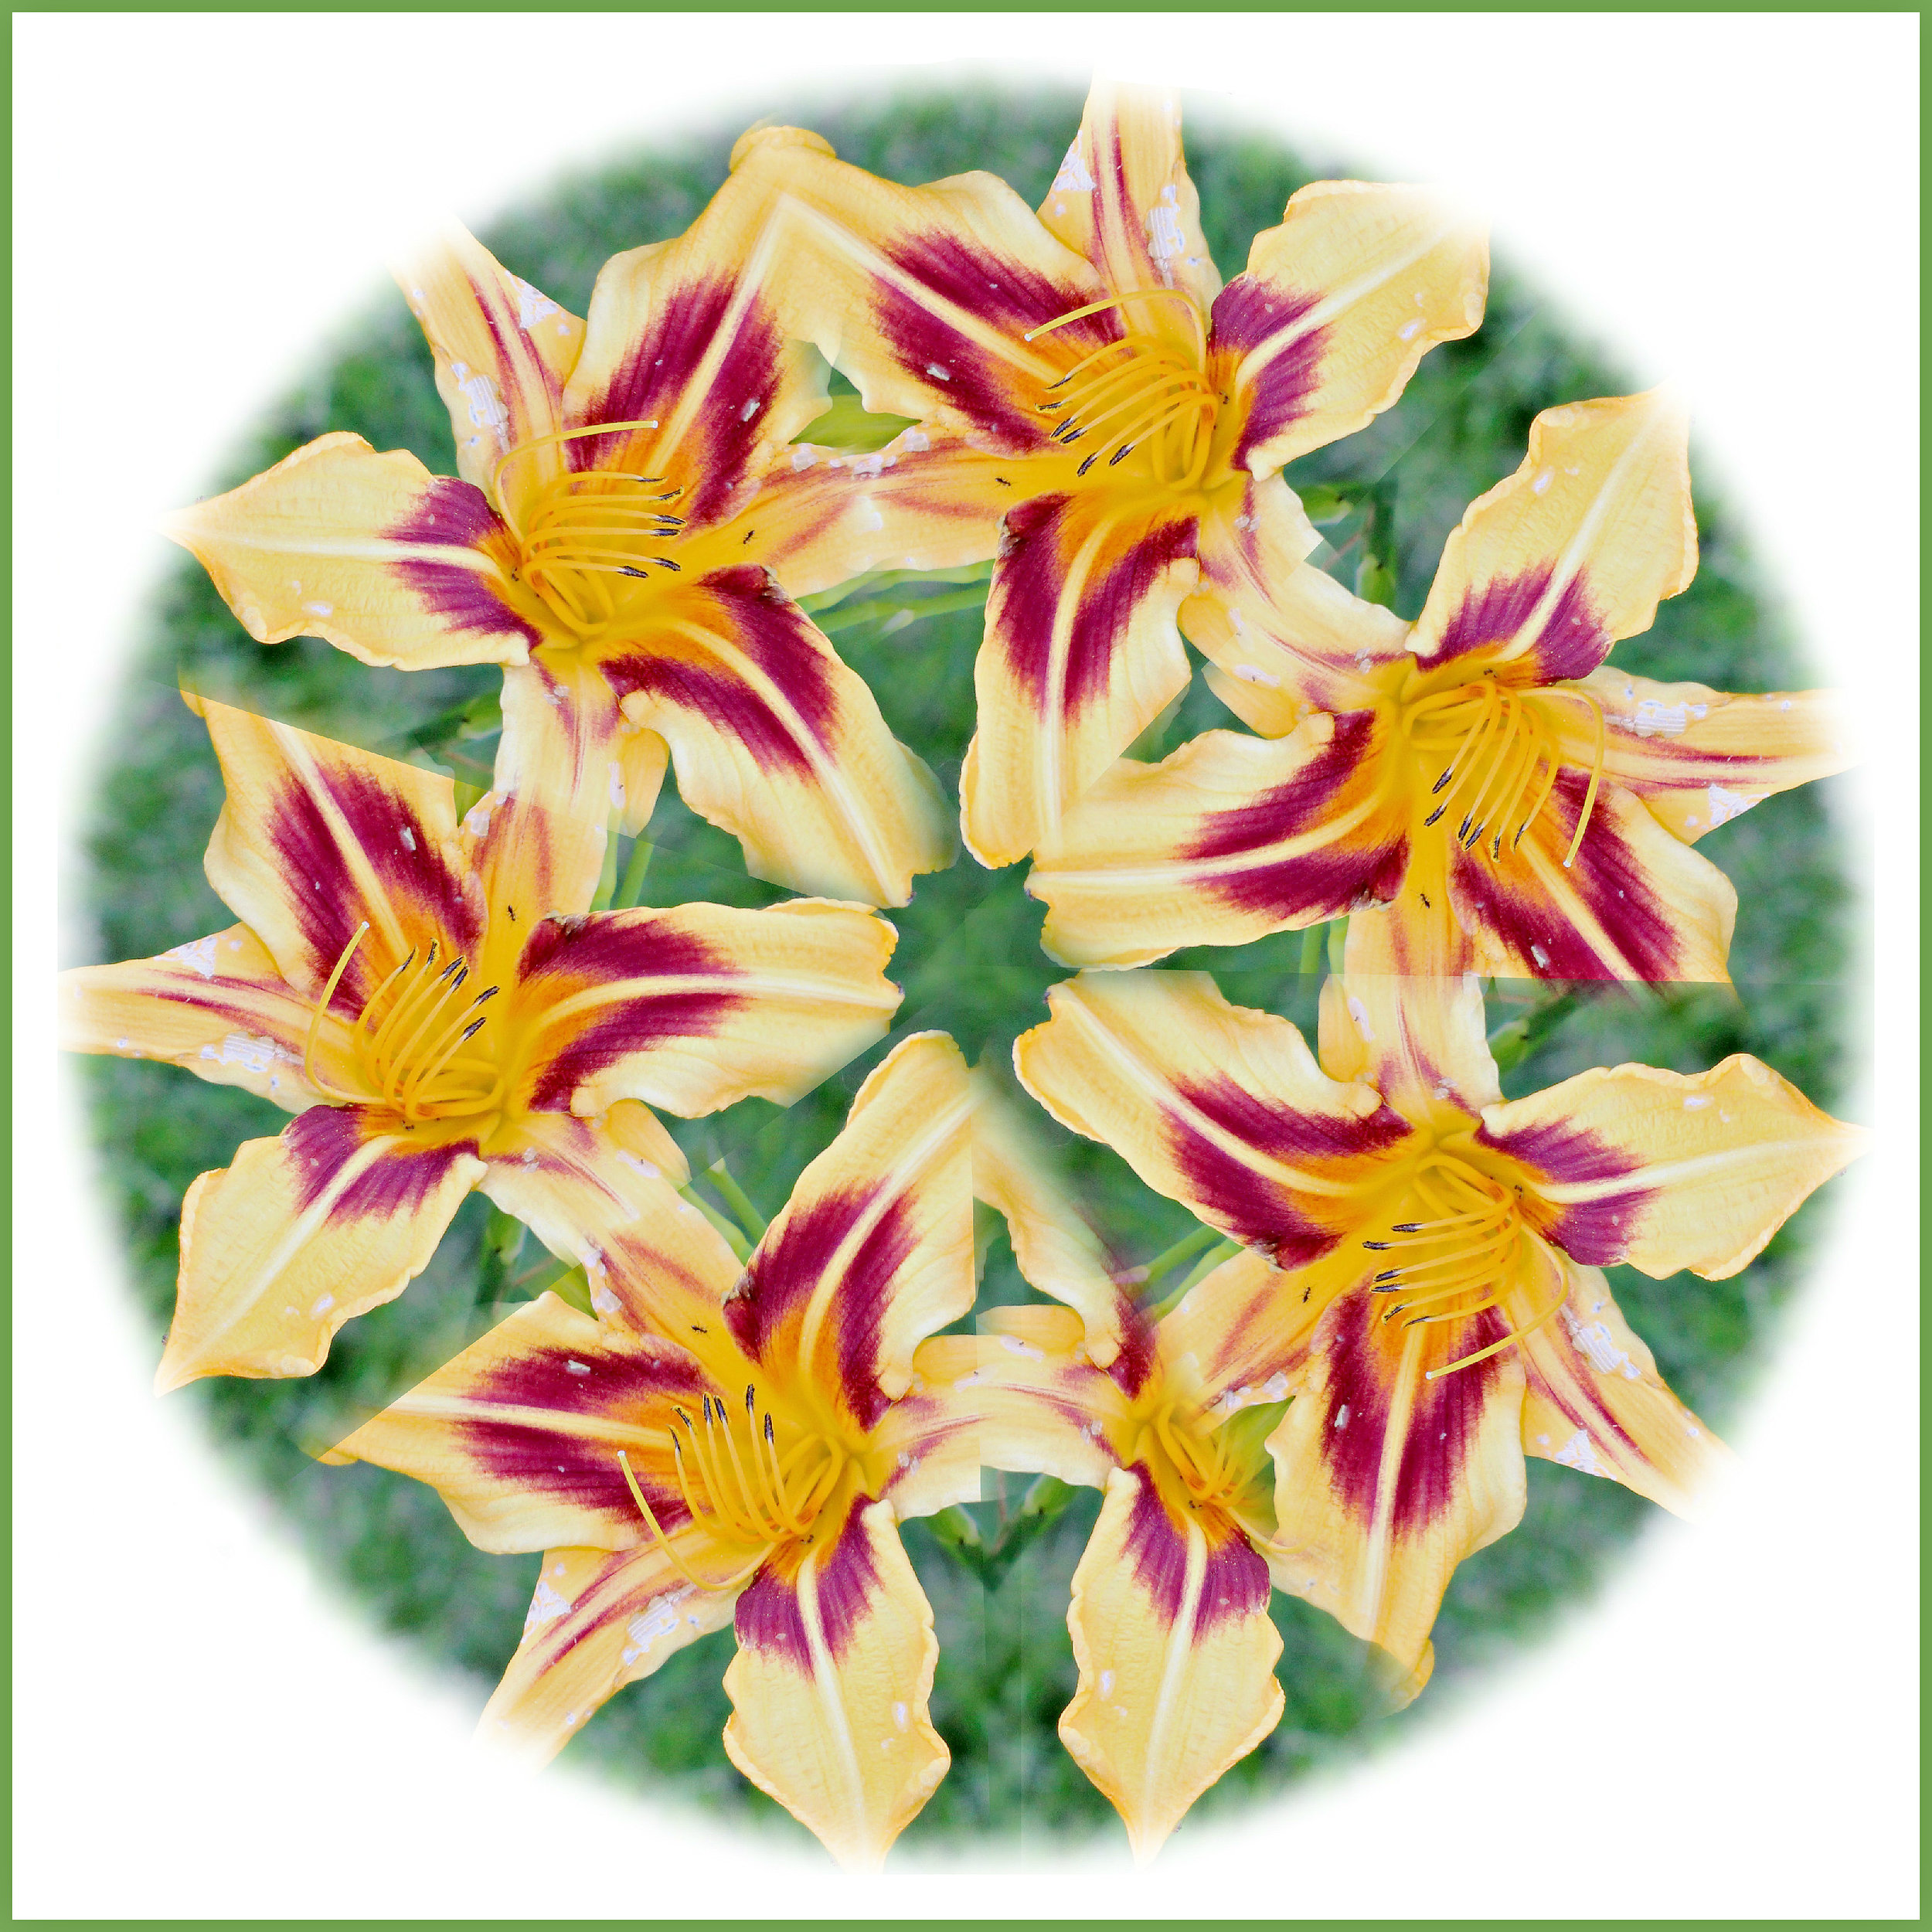 Day Lily Mandela  Maureen Donnelly 2017 Edited Photo 8 x 8 $15